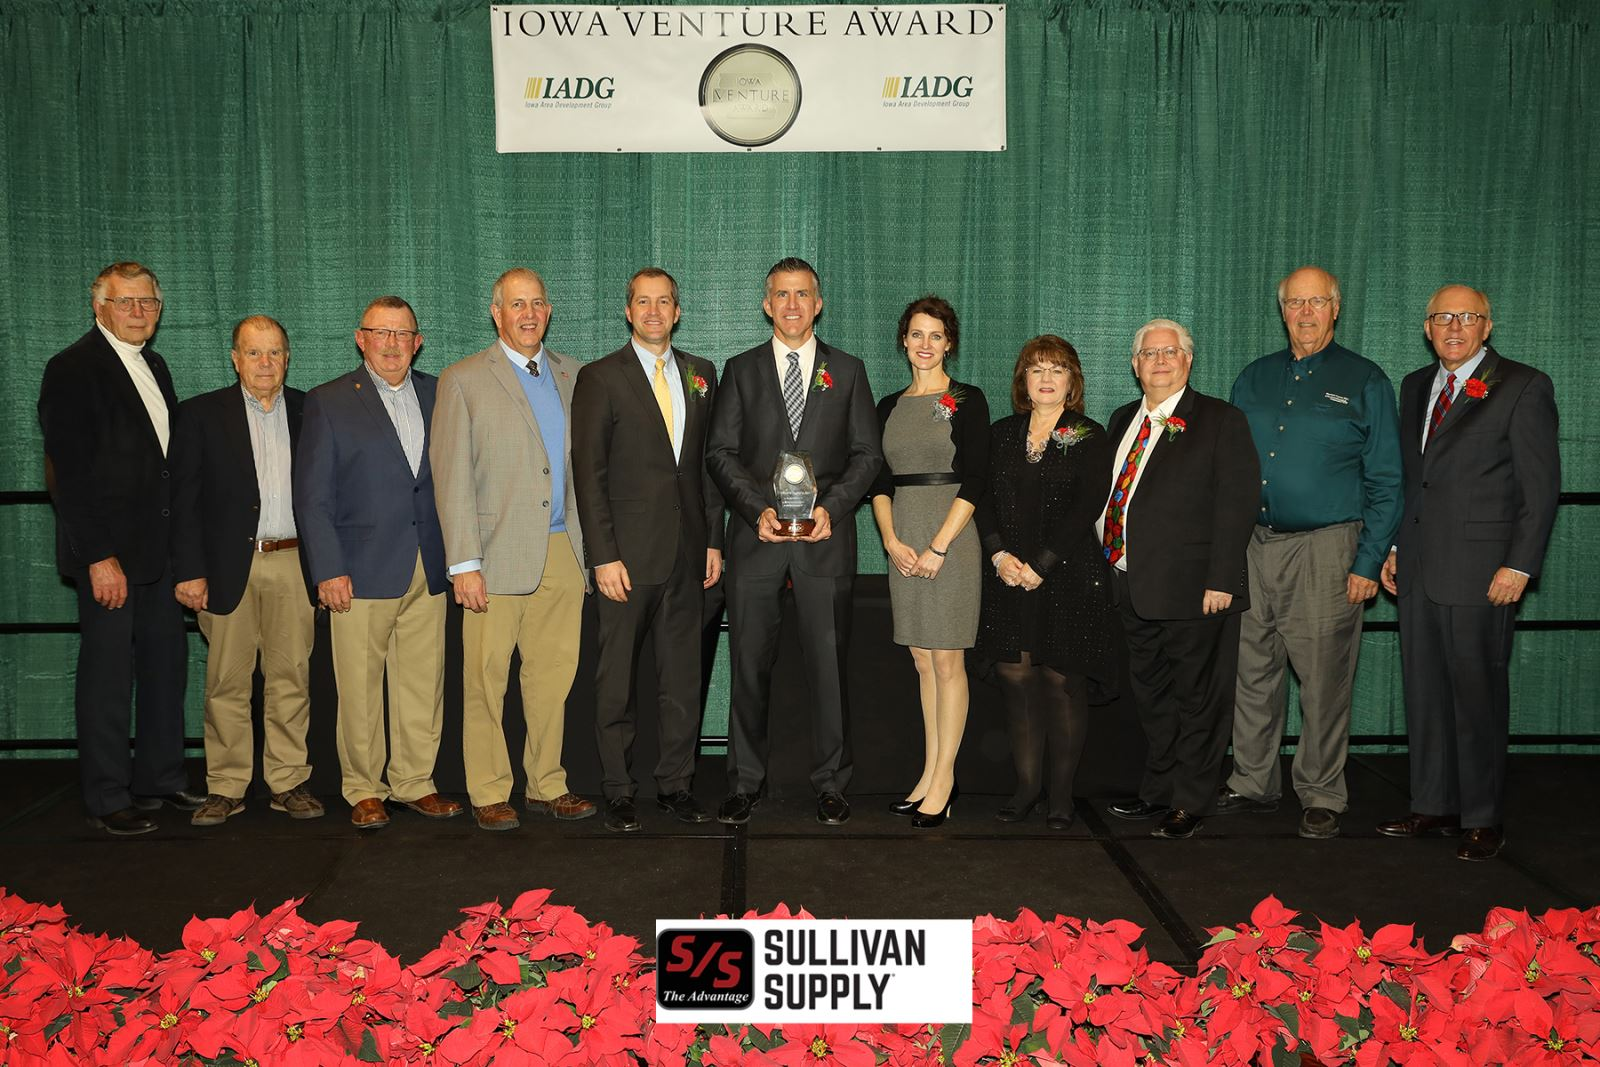 Sullivan Supply Recipient of 2018 Iowa Venture Award